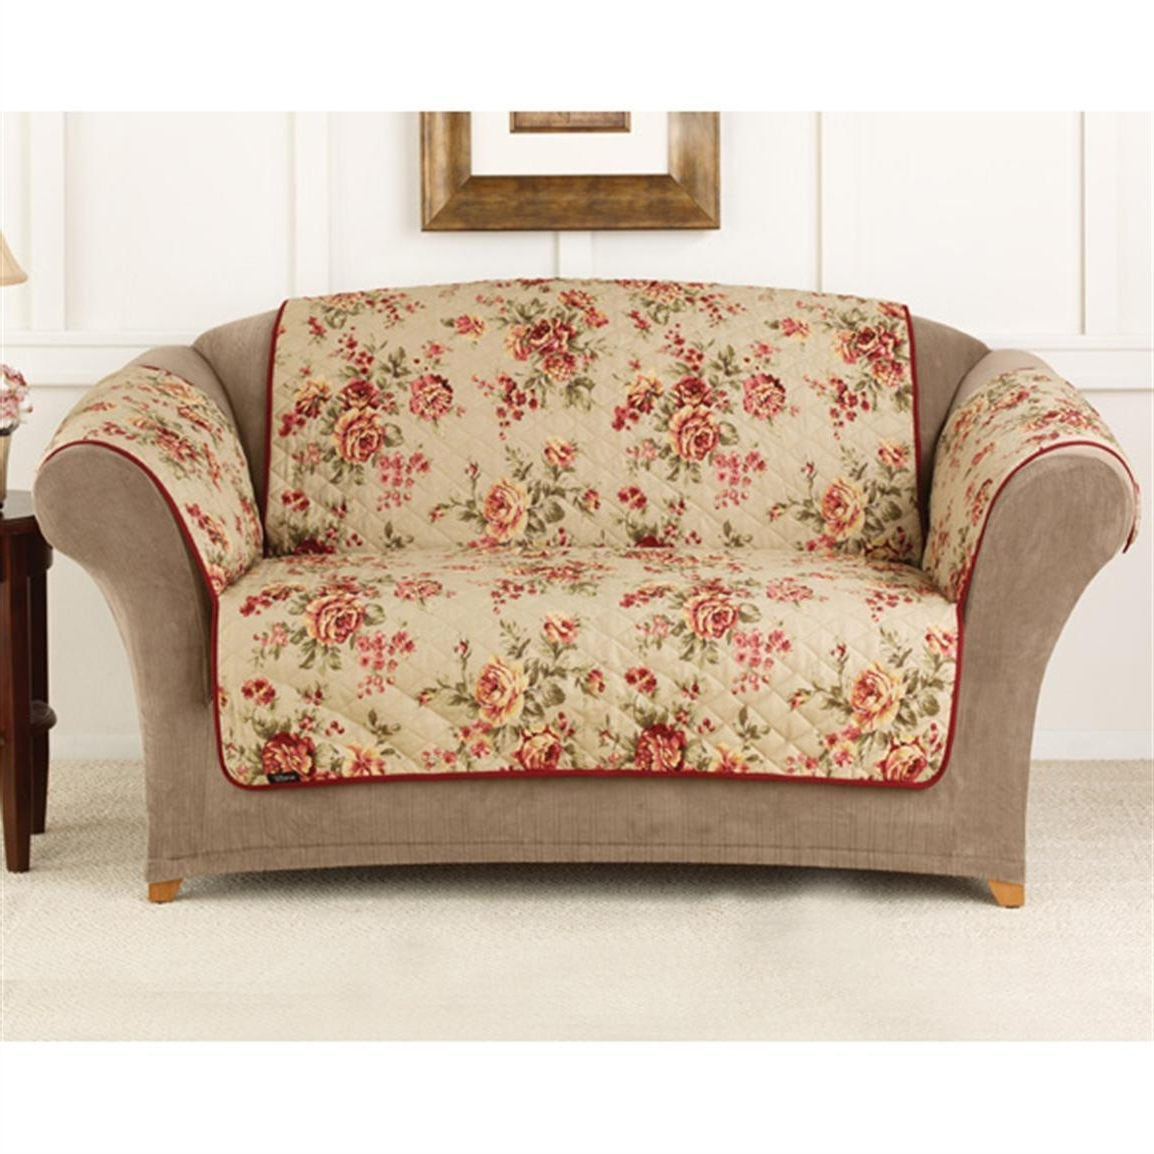 Popular Furniture : Covers For Sofas And Couch Sure Fit Lexington Floral Intended For Chintz Sofas (View 16 of 20)